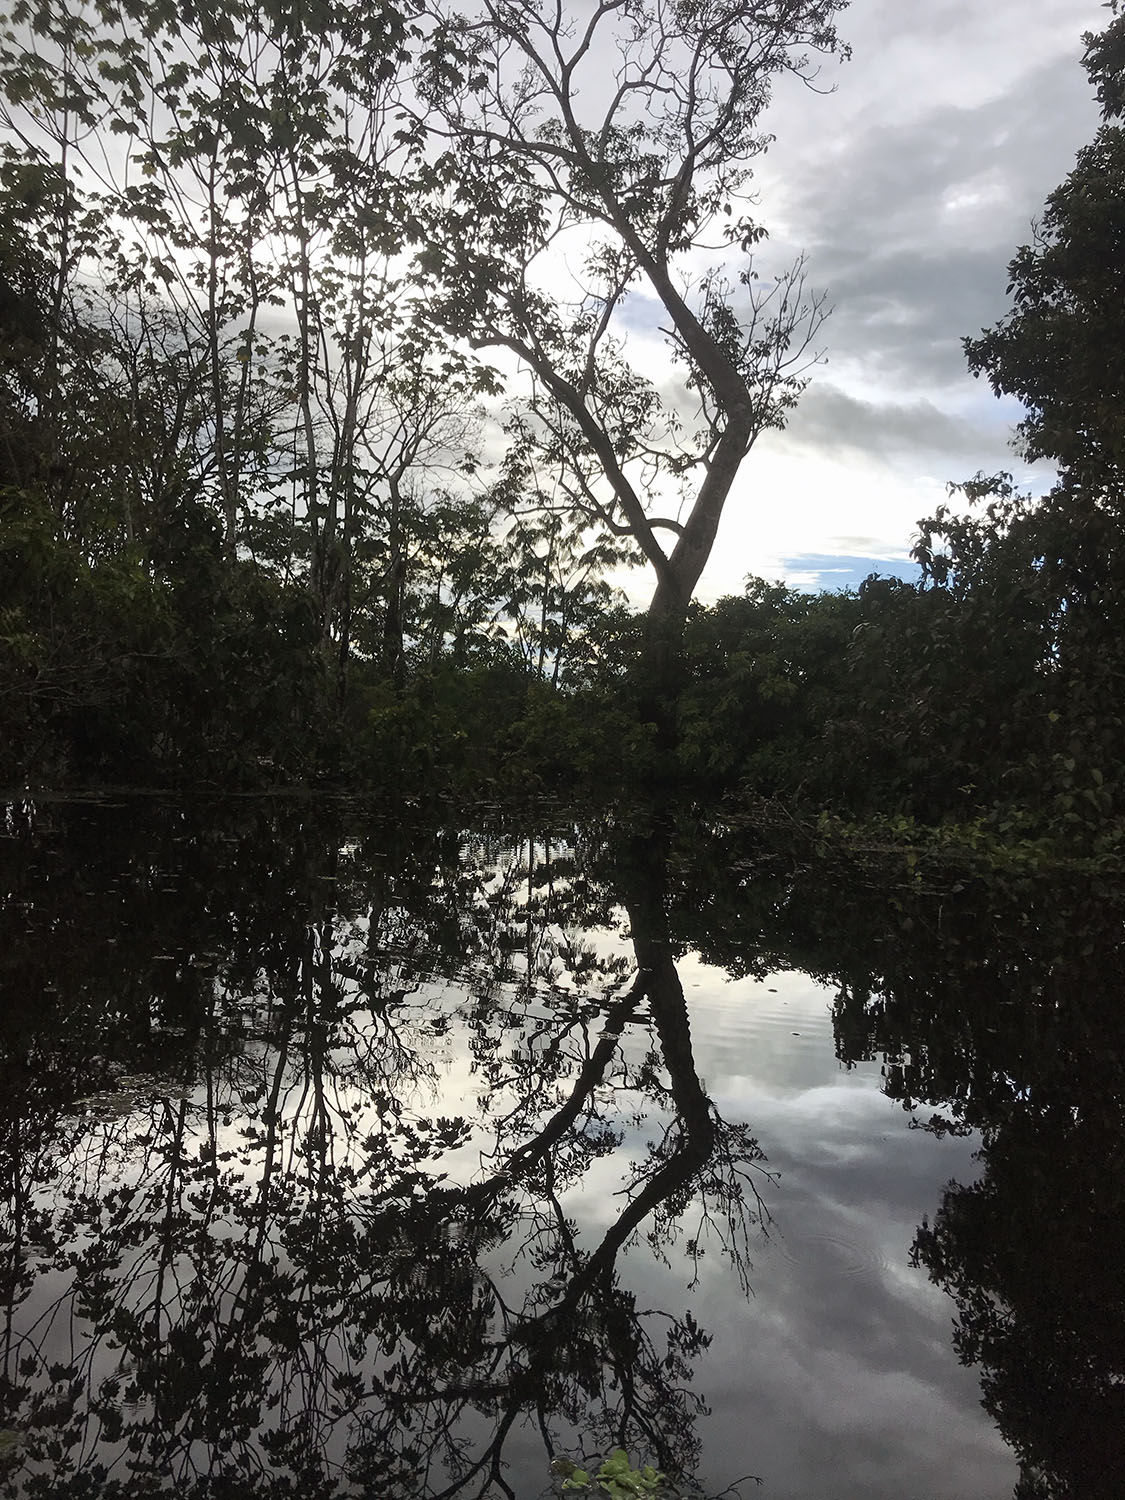 Trees reflecting in the water at dusk in the flooded jungle